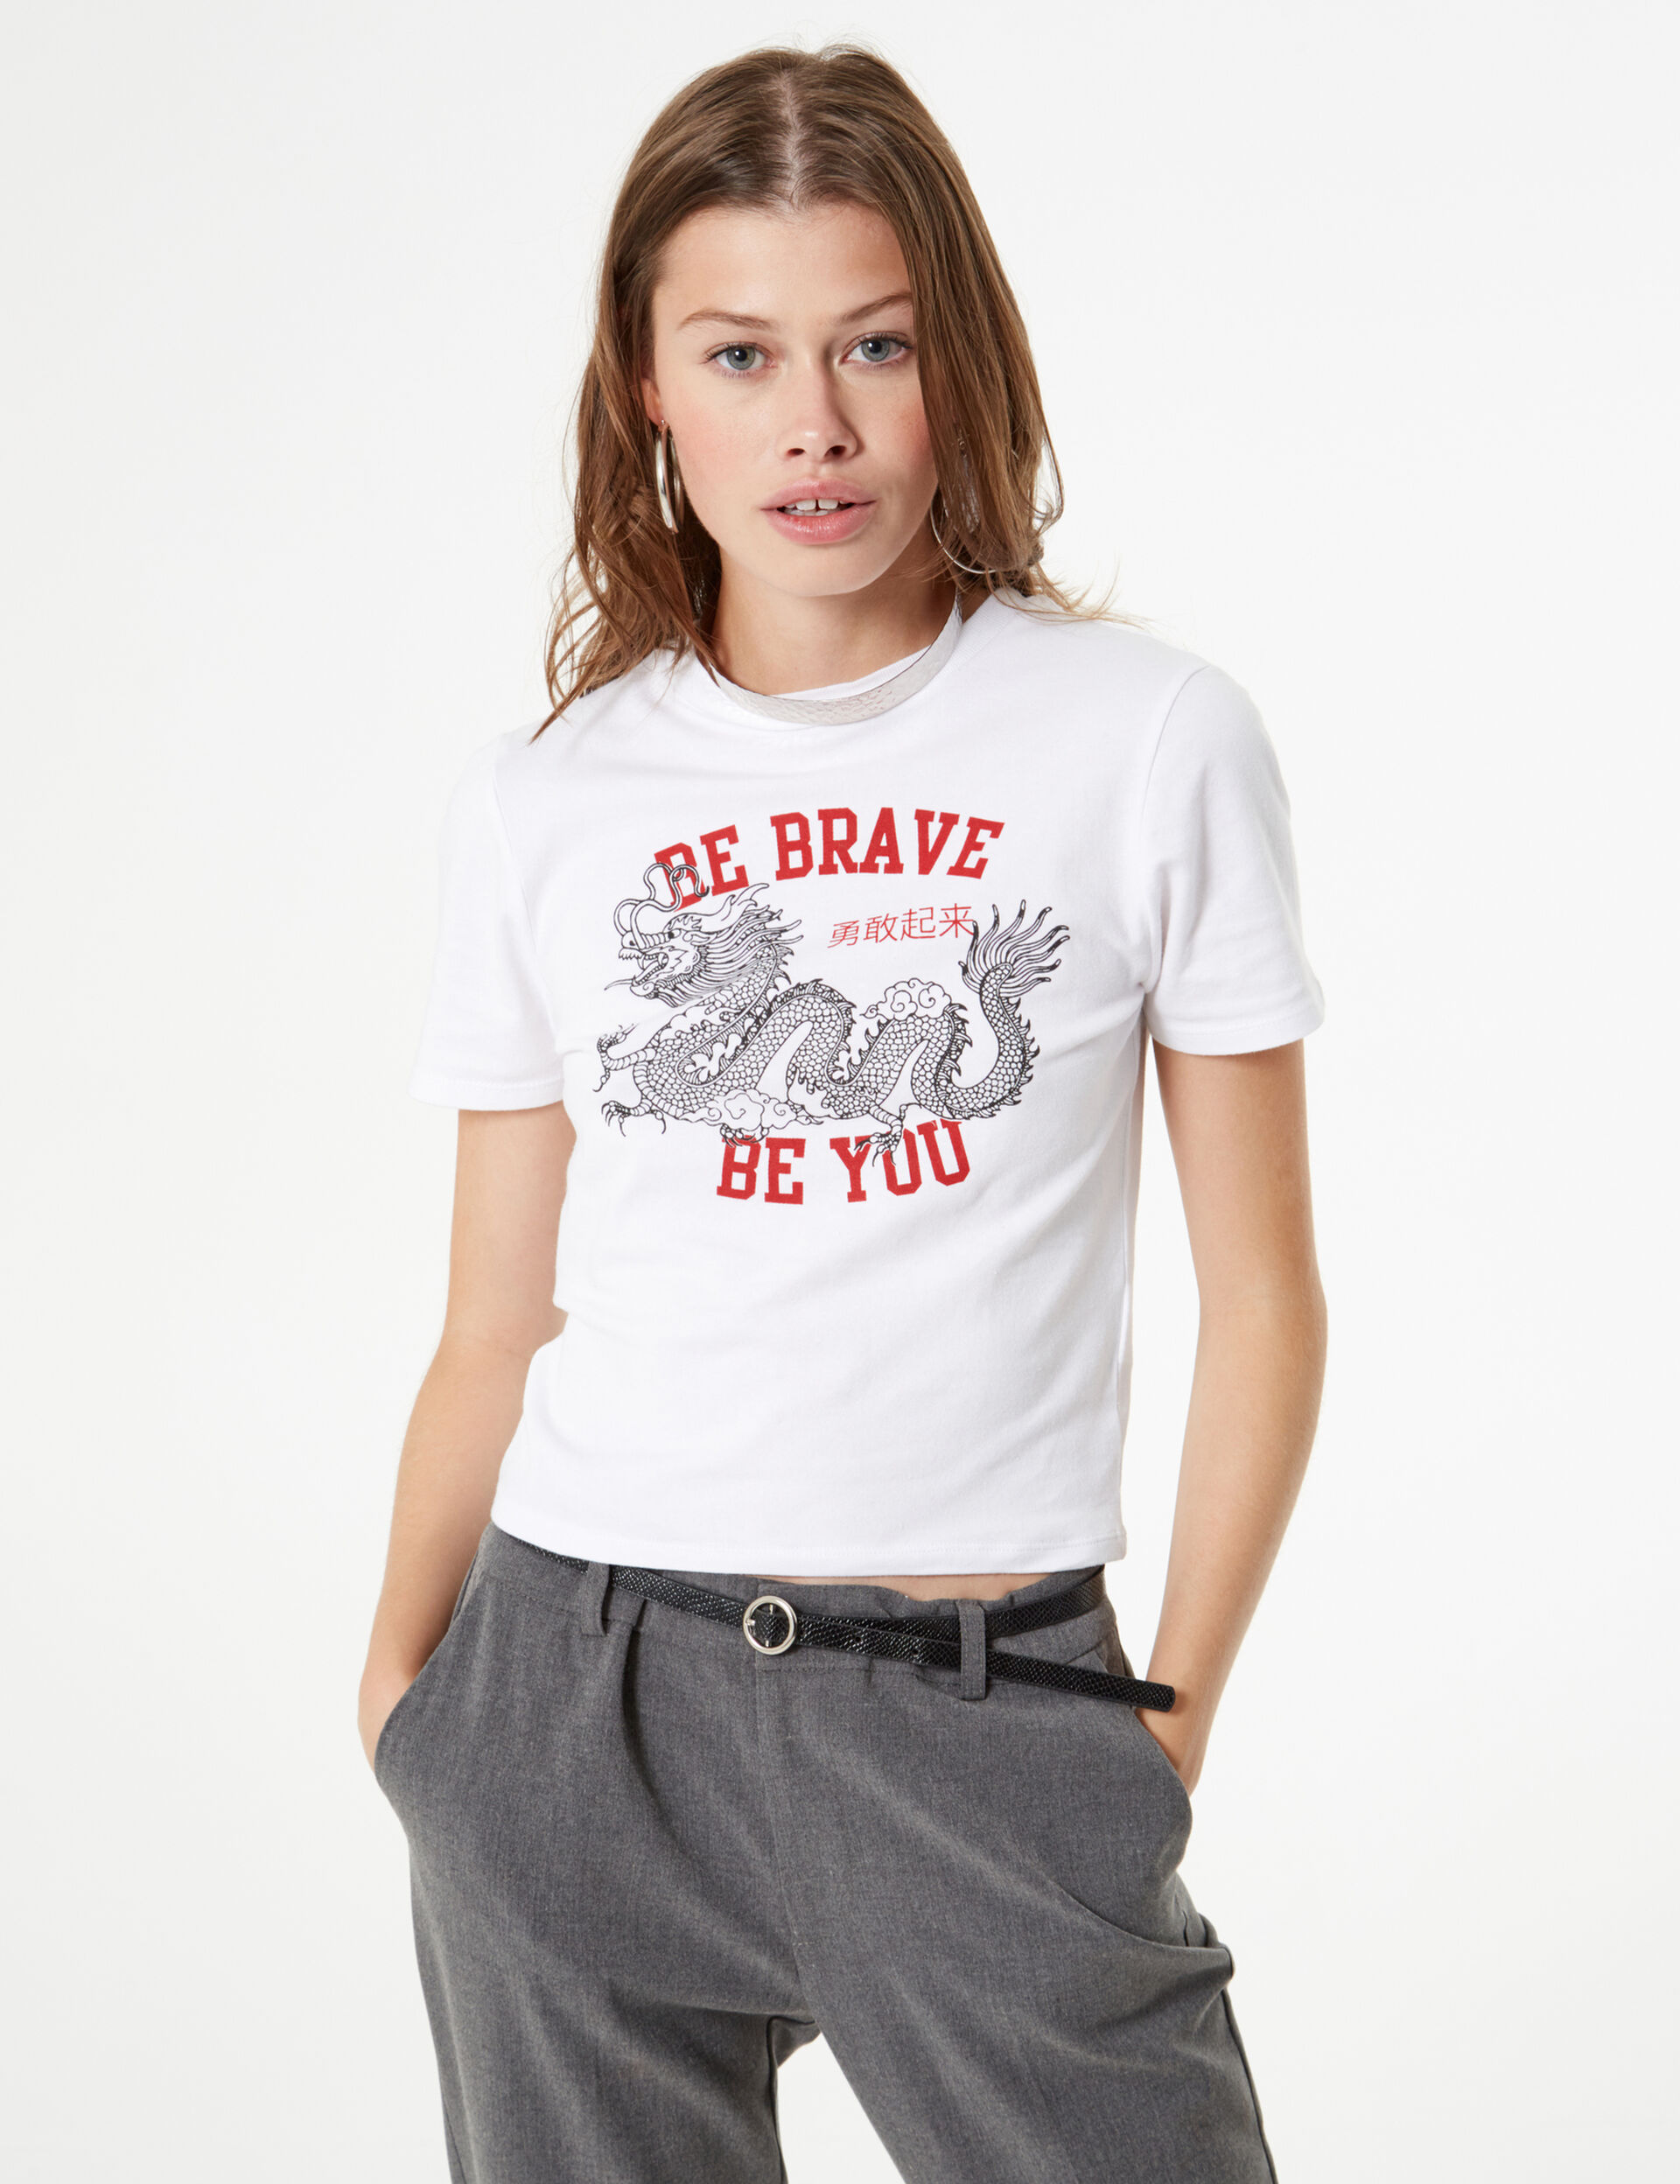 Be brave be you t-shirt